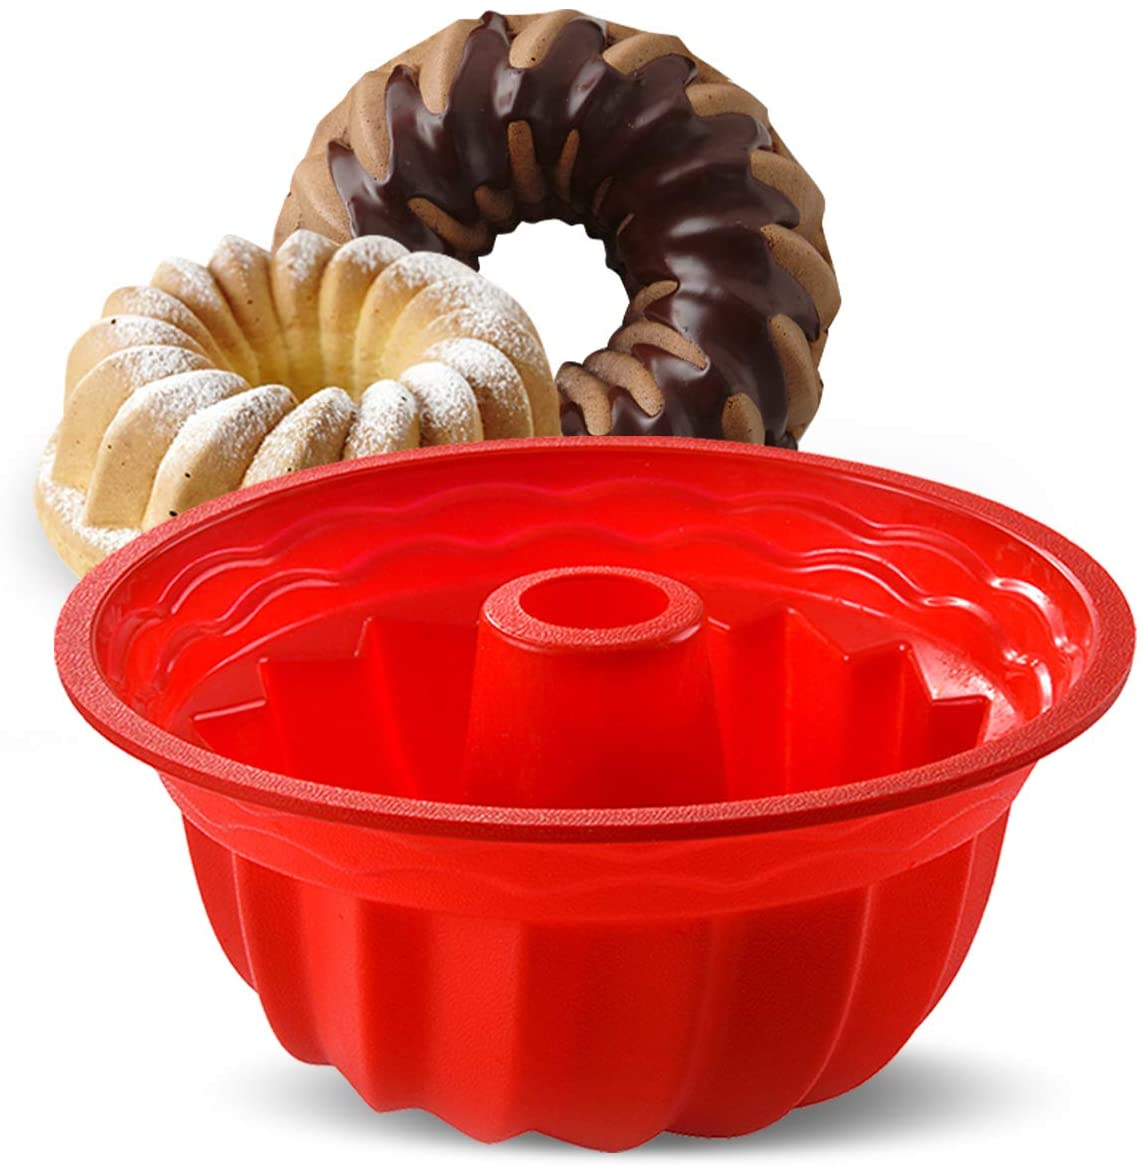 Vintage Coppertone 3 12 Cup Ring Jell-o Mold Bundt Cake Baking Pan